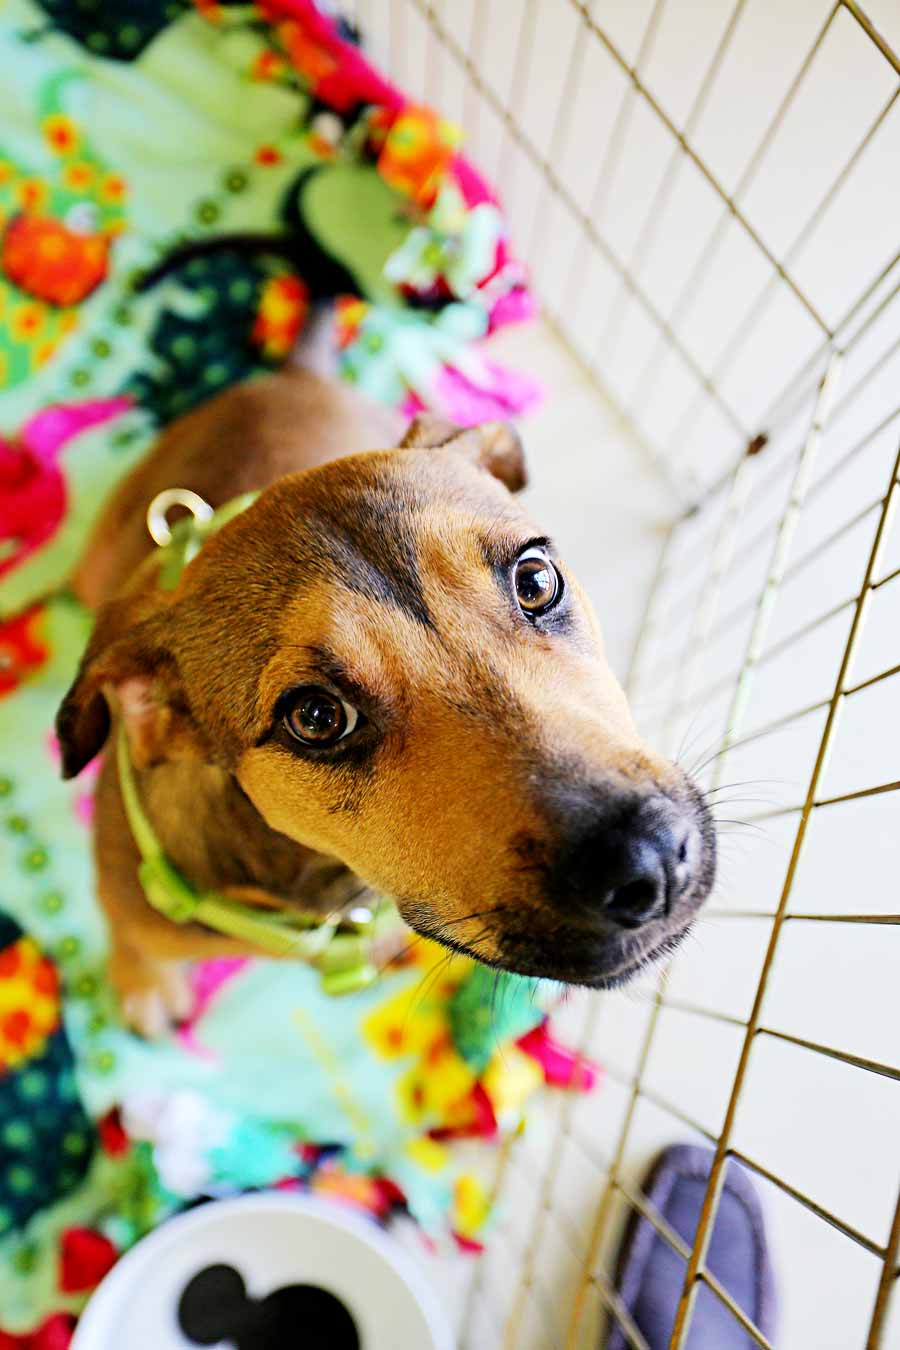 """April 2014: Who could say """"no"""" to Katherine's imploring eyes? Not us. And not our readers. Donations to the no-kill South Lake Animal League climbed after our feature story on fur babies needing adoption."""